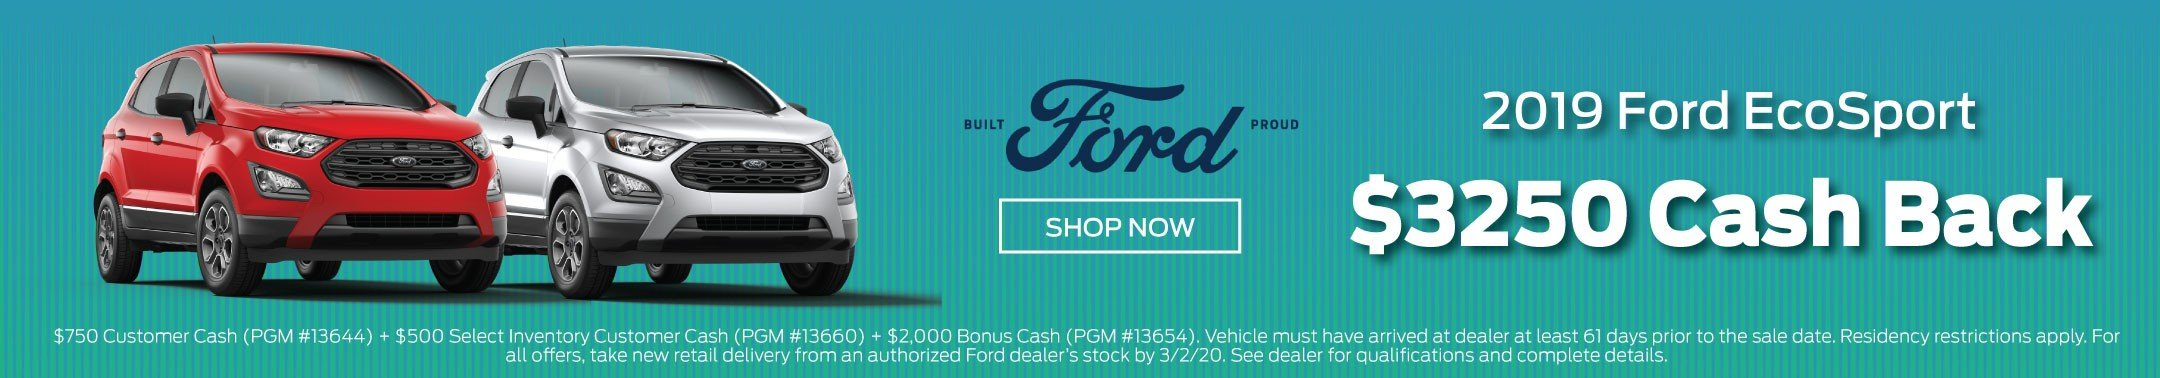 2019 Ford EcoSport Offer 2-2020